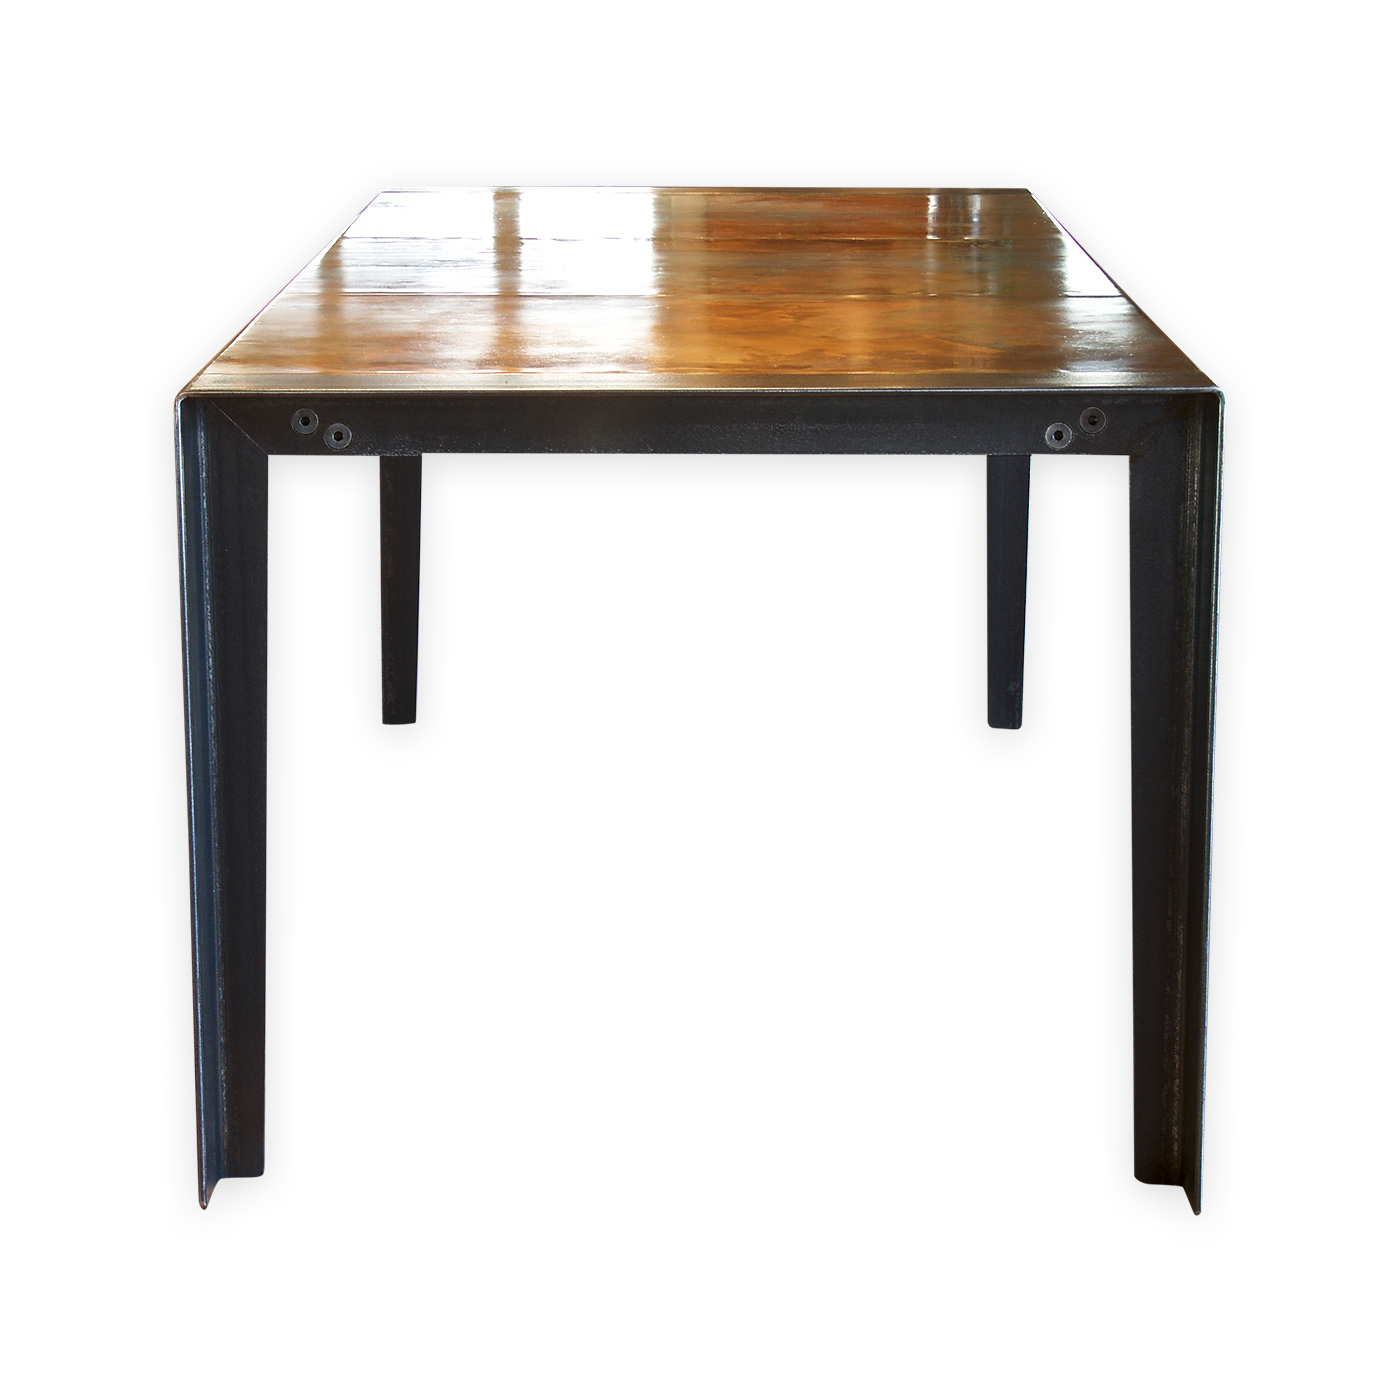 Copper Dining Room Table: Contemporary Copper Table